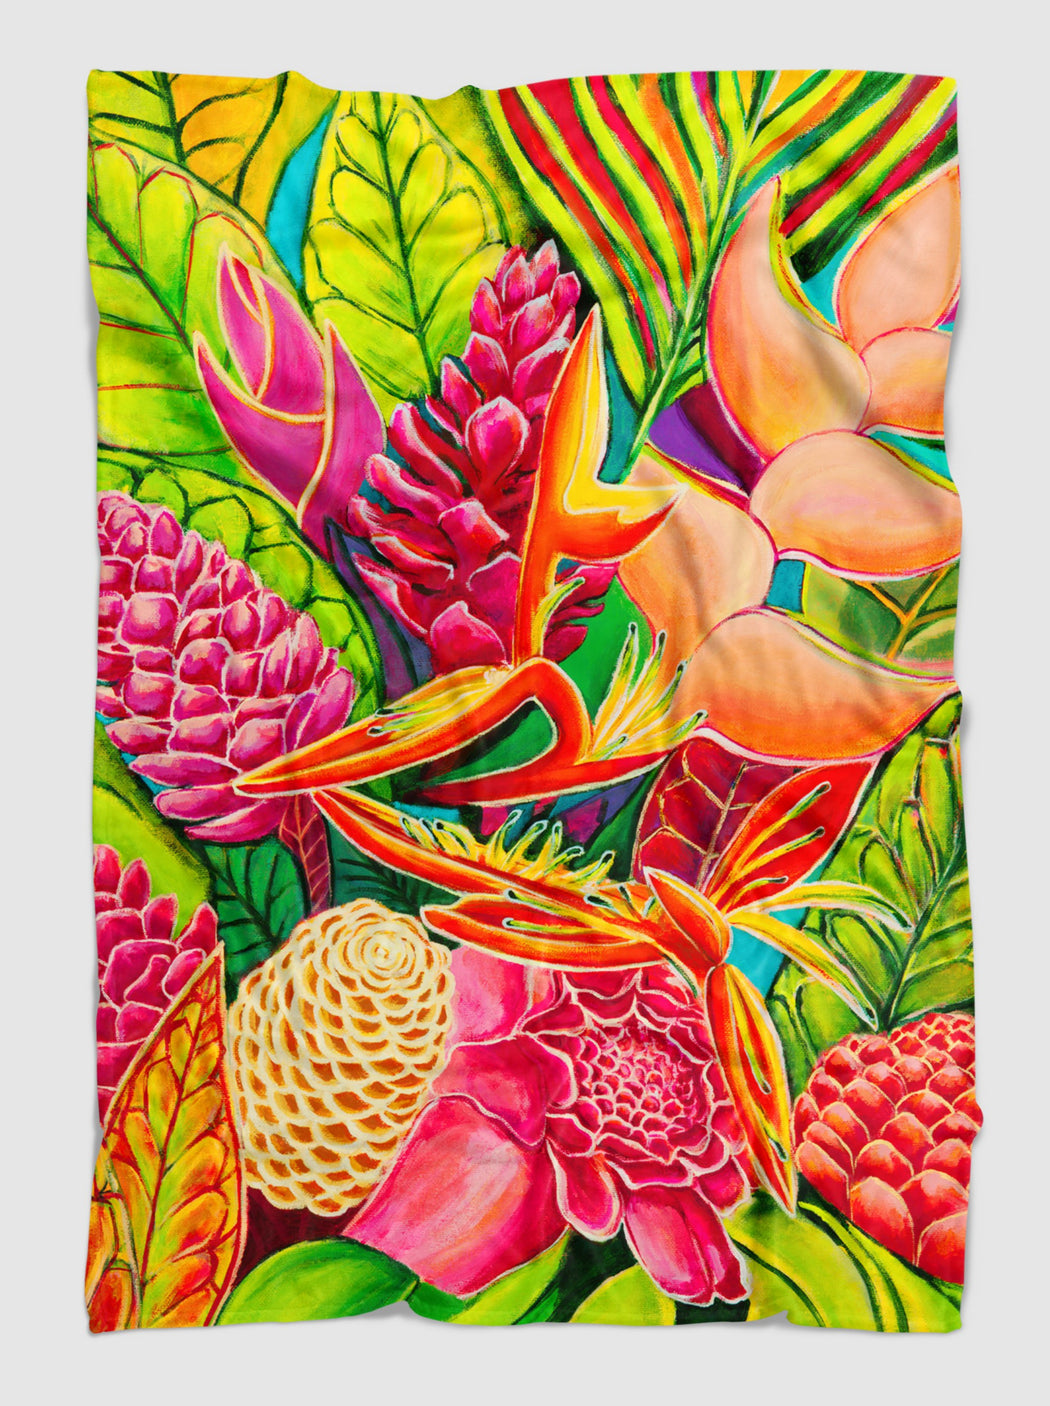 *NEW* Hawaiian Love  - Cuddeling blanket